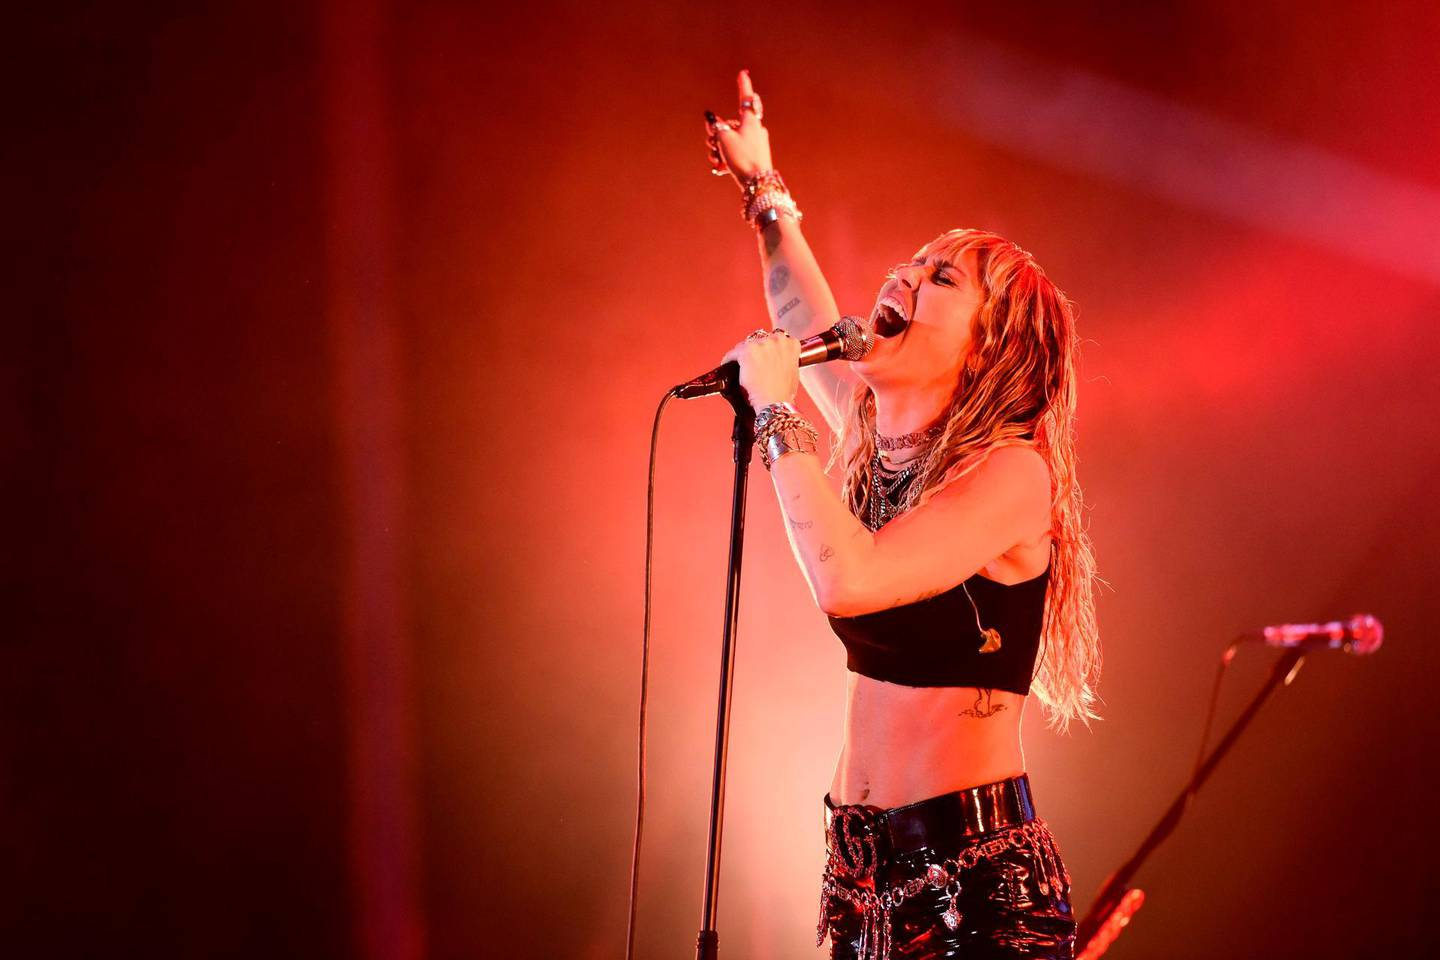 US singer Miley Cyrus performs on stage during a concert at the Sunny Hill Festival in Pristina on August 2, 2019. / AFP / Armend NIMANI